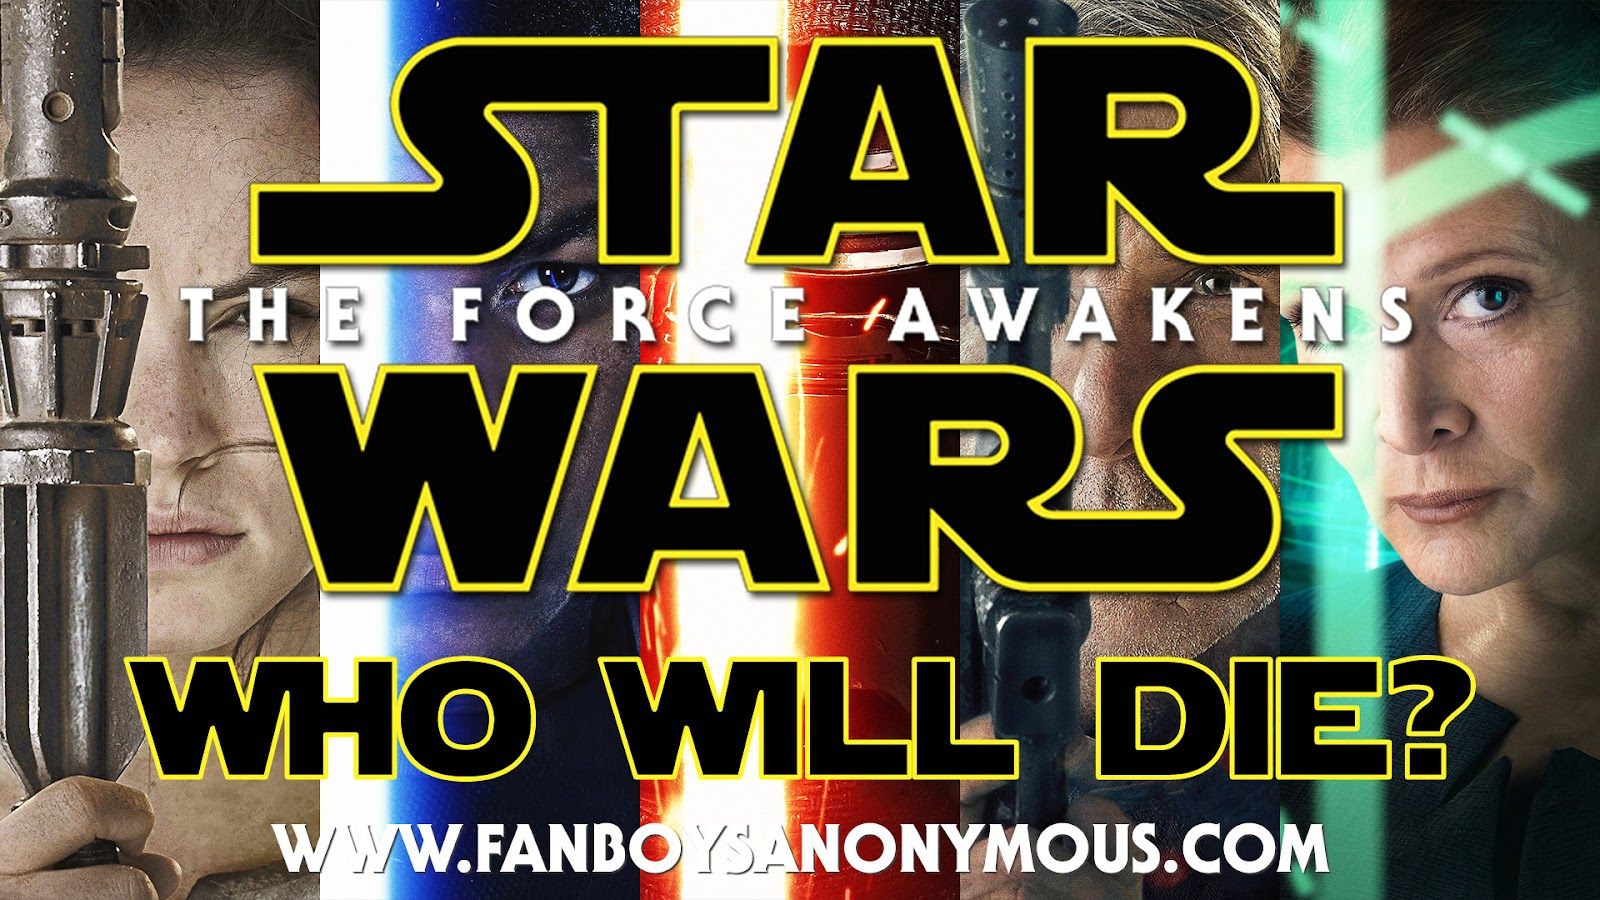 Who will die in Star Wars Force Awakens episode vii?